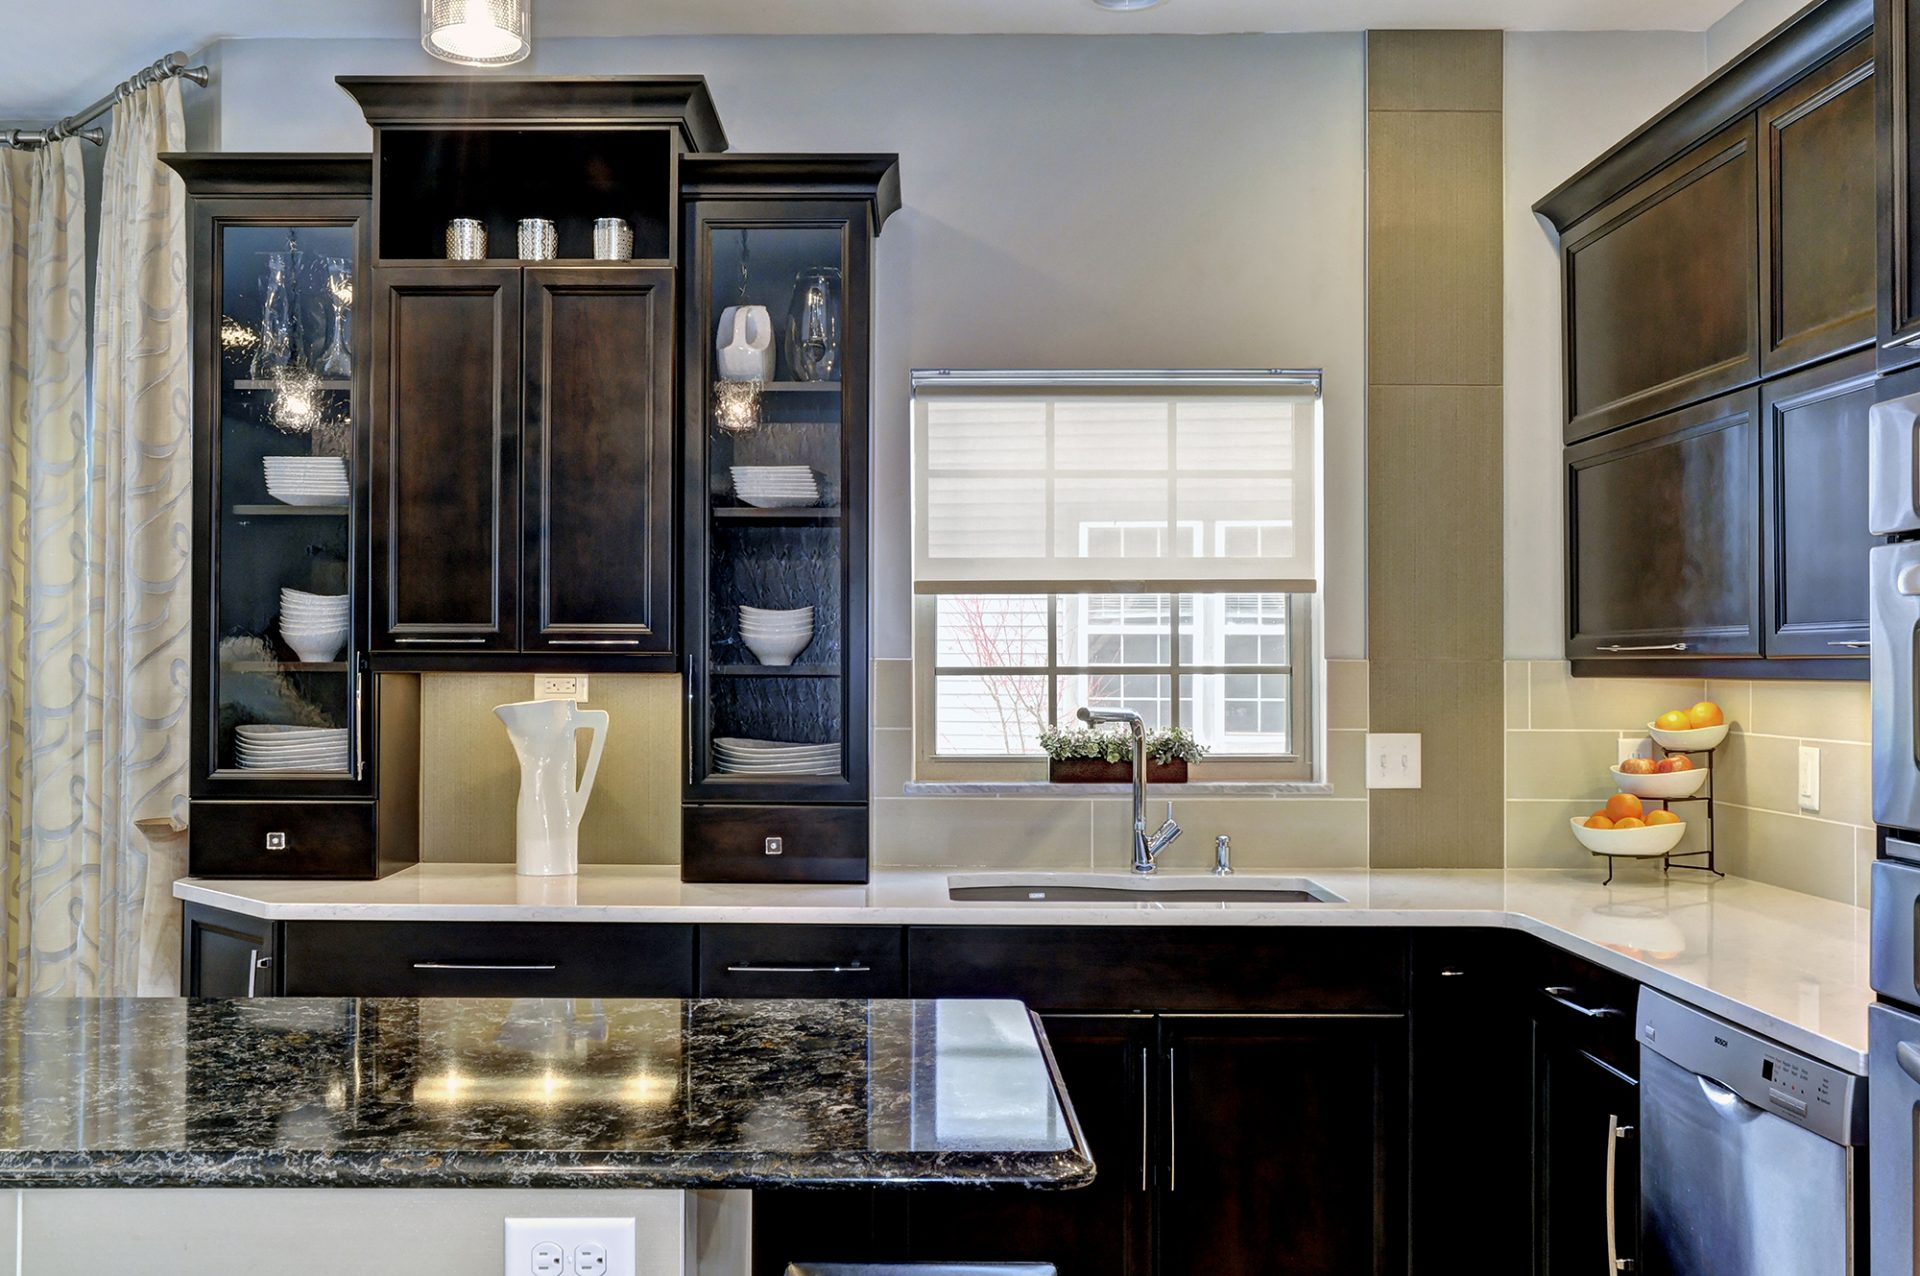 Kitchen, Westerville, Dave Fox, Remodel, black cabinets, large island, flat top range, coffee bar, granite